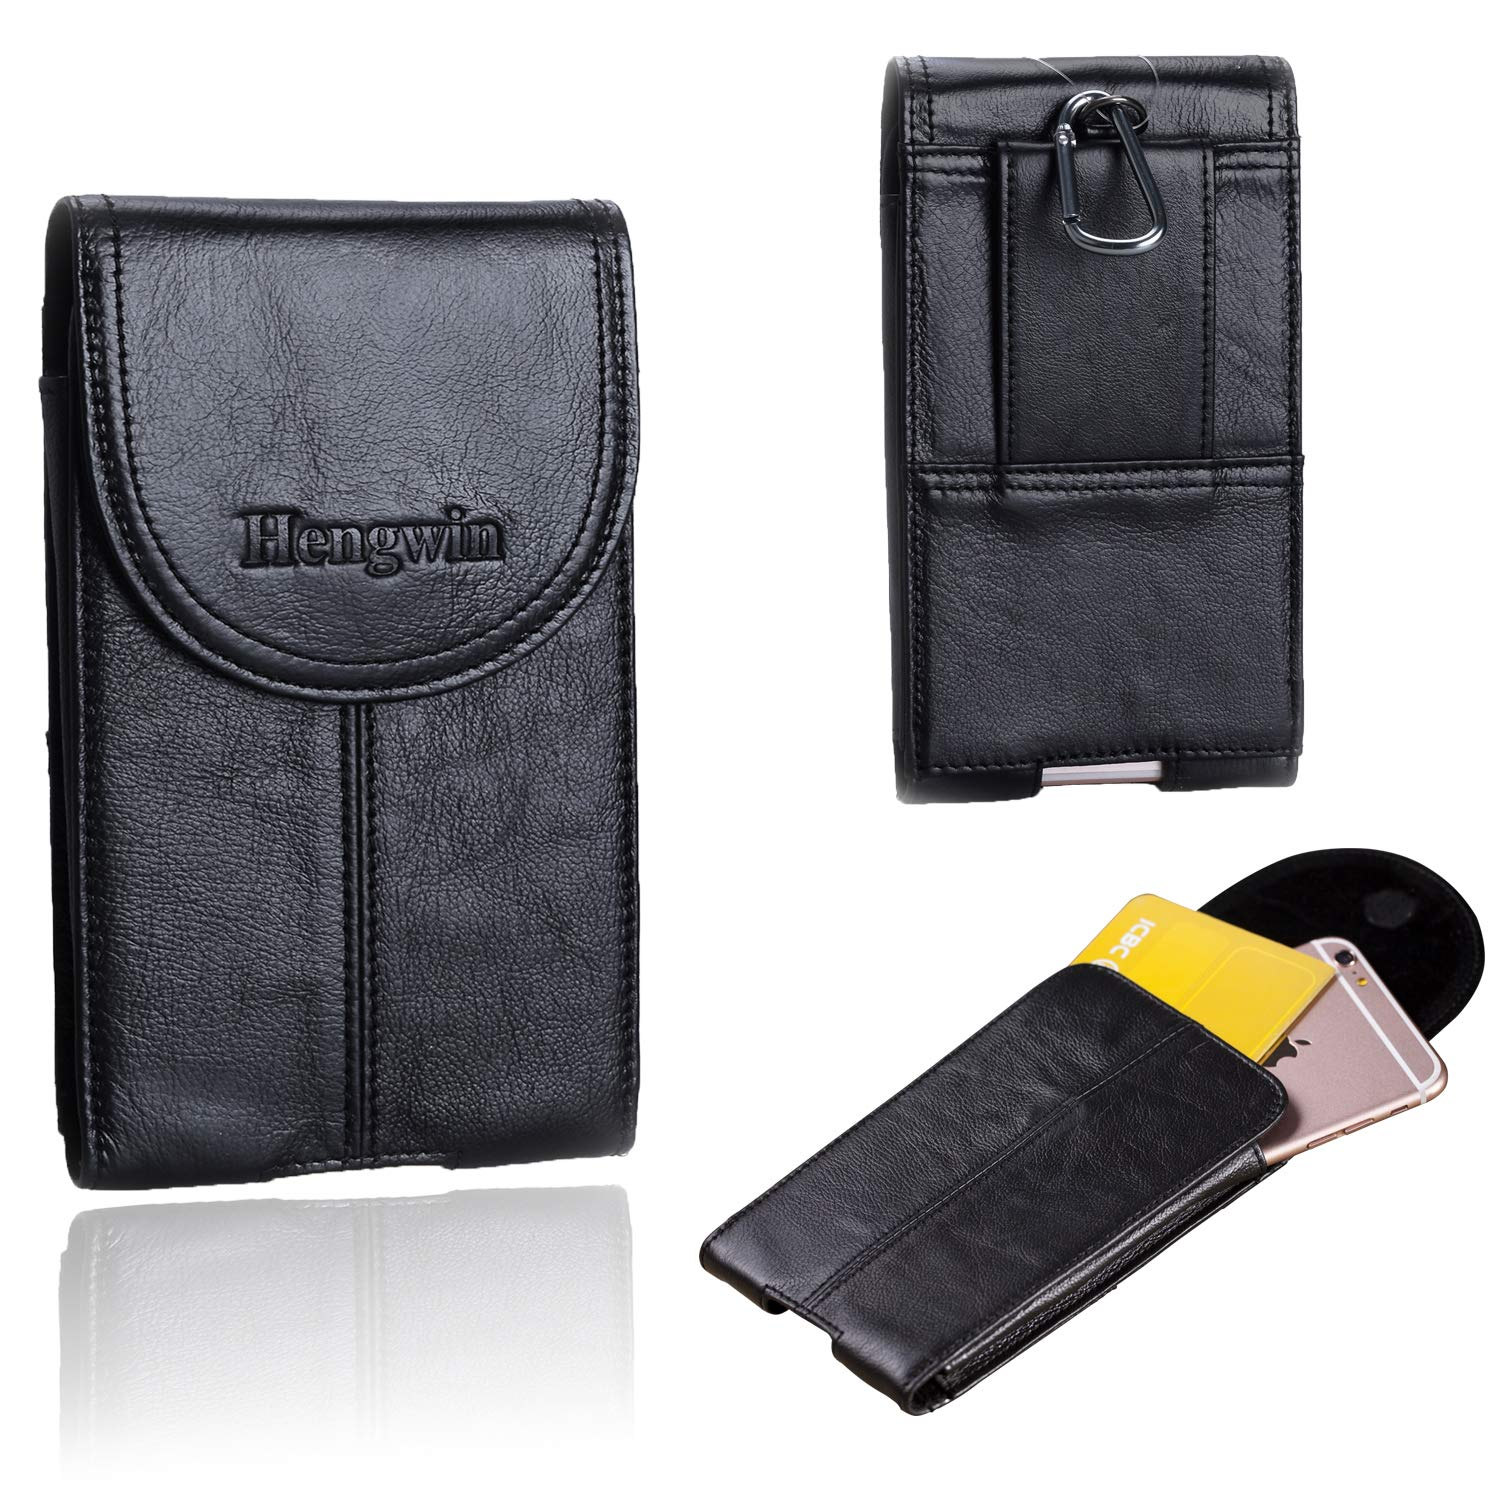 Hengwin Genuine Leather Holster for iPhone 11 Pro Max Case with Belt Clip, Samsung Galaxy Note 10 9 8 Holster Case with Belt Loop Phone Holder iPhone Pouch Belt Case for Men Waist Fanny Pack (Black)